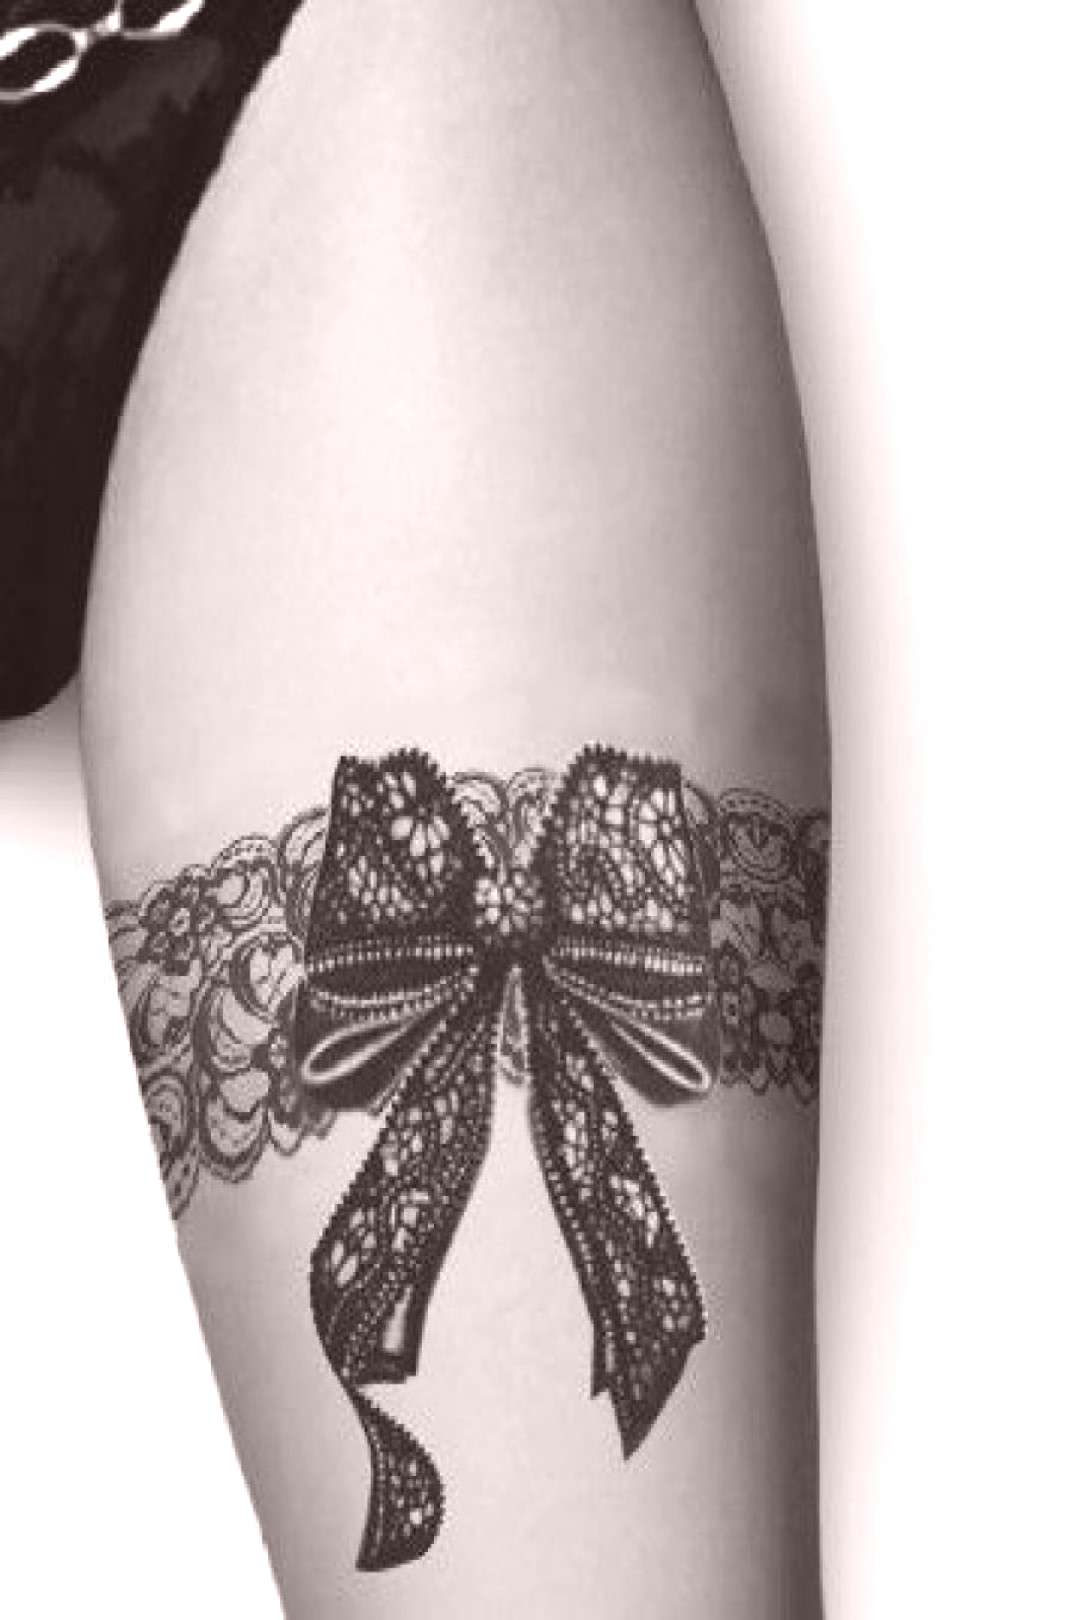 Garter tattoo with a bow on the thigh - Garter tattoo with a bow on the thigh -